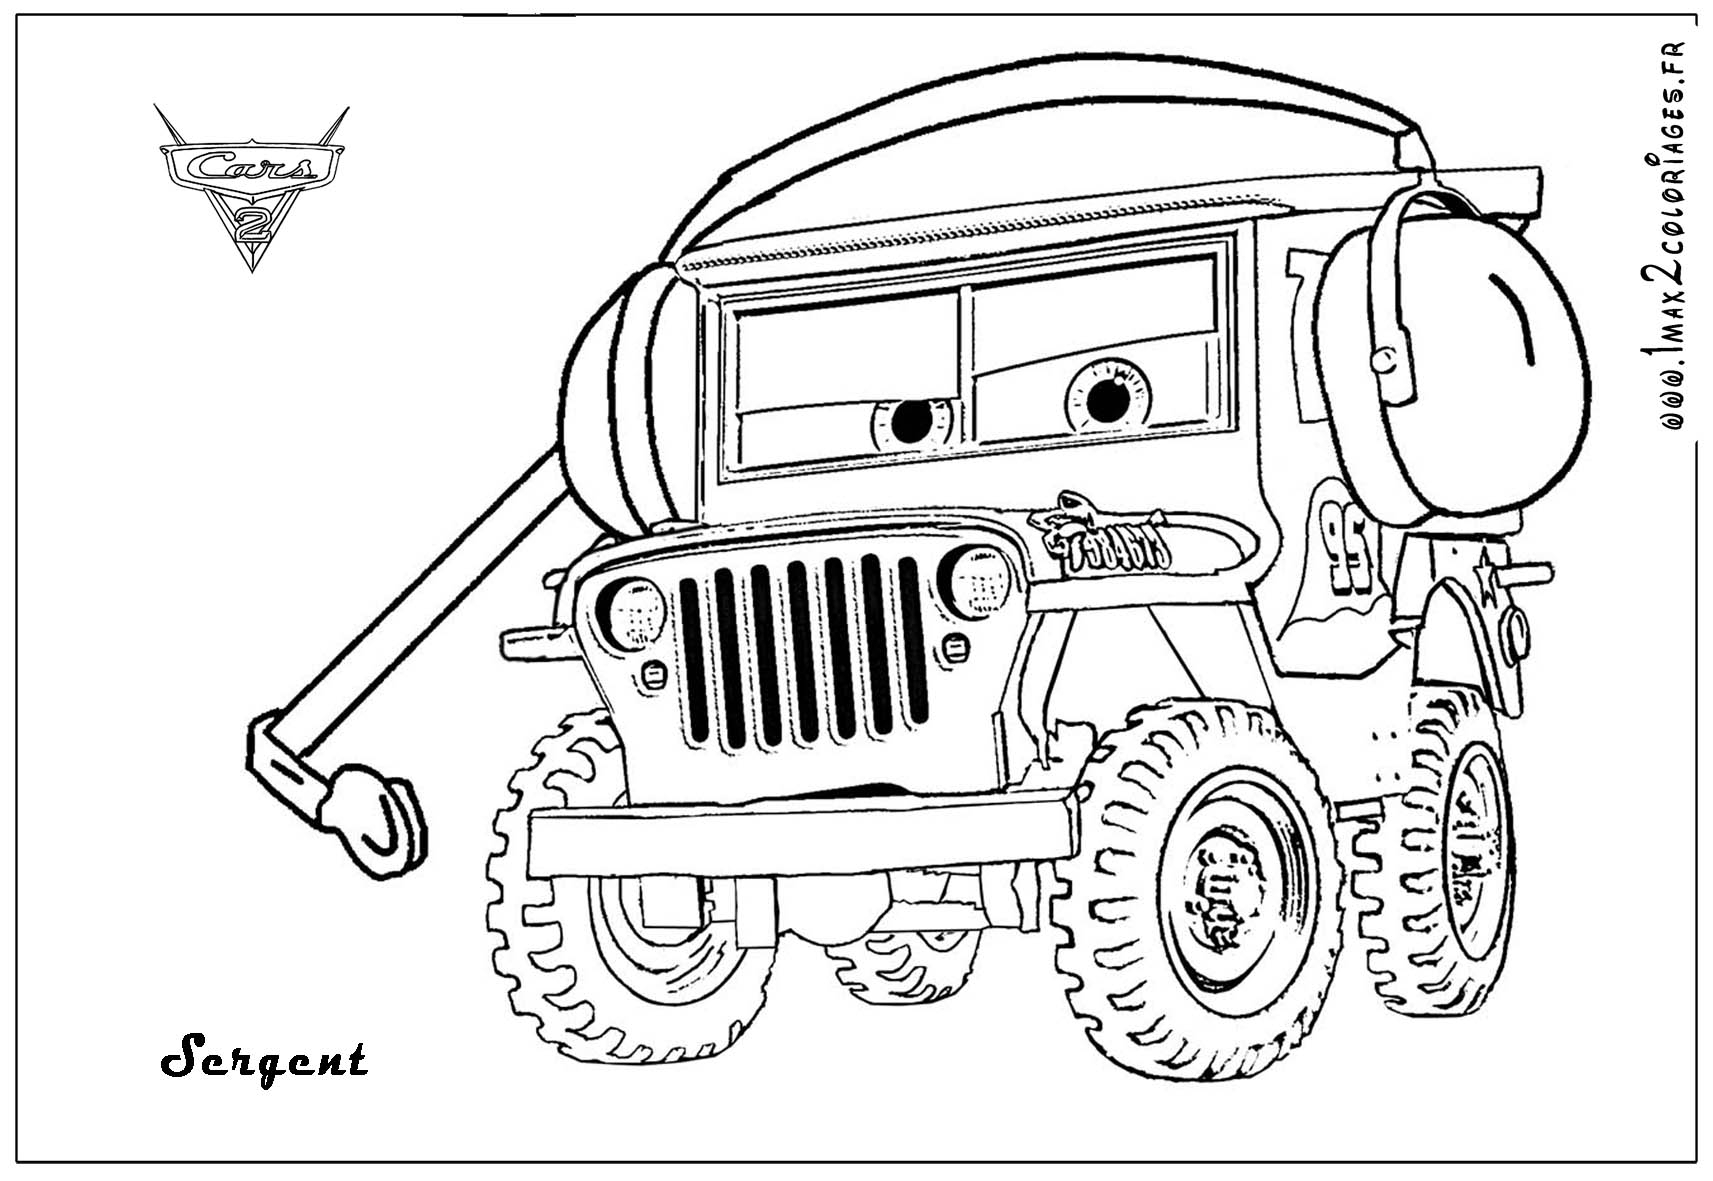 Cars the Movie Coloring Pages to Print | Free Coloring Sheets